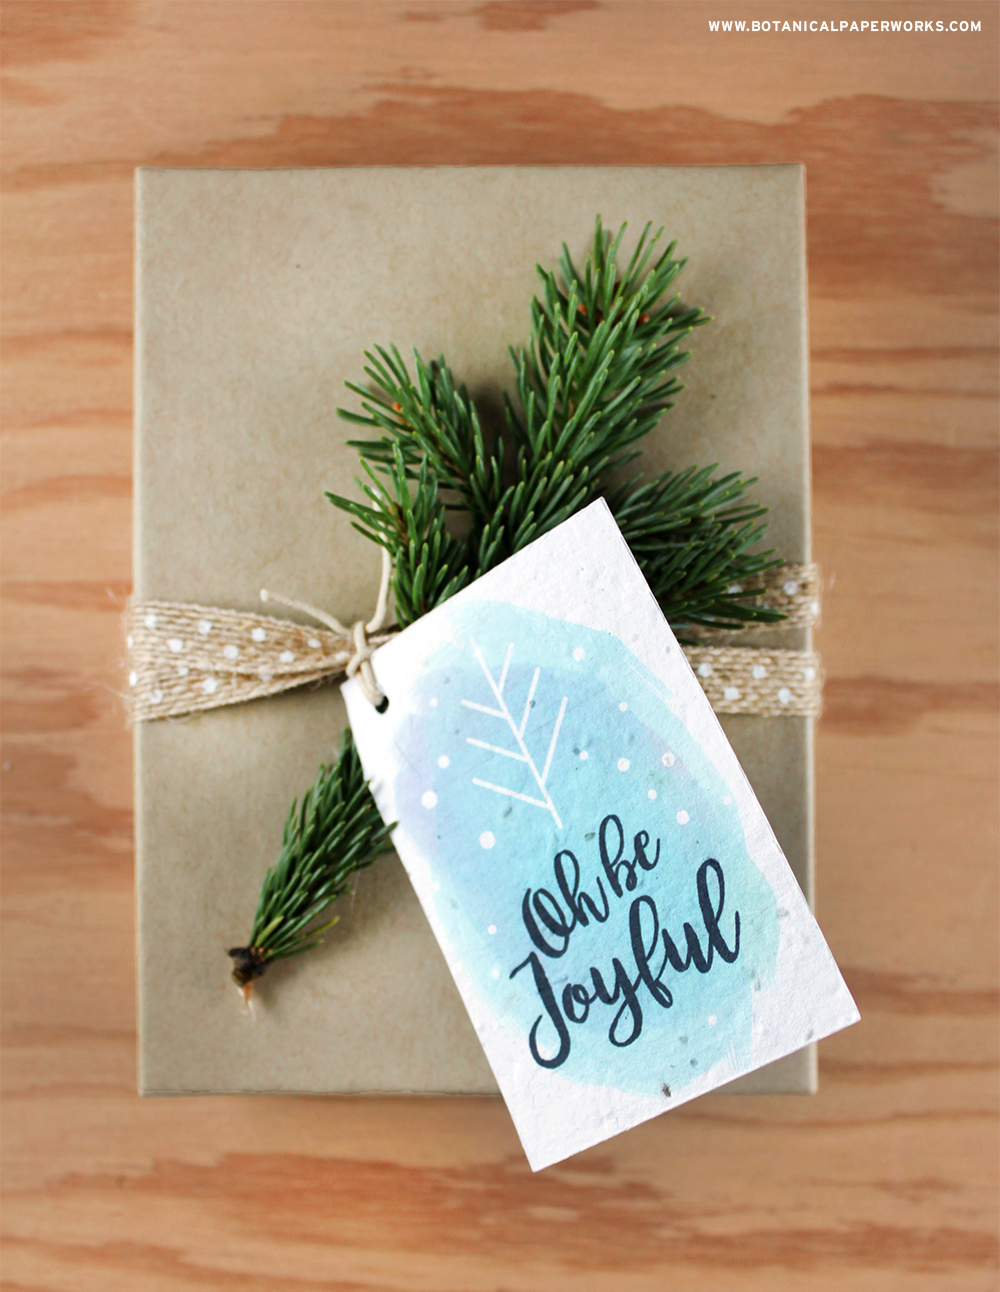 Go green with you gift giving this year! Download a free printable to make these Seed Paper Tags and get eco-Friendly gift wrapping tips.